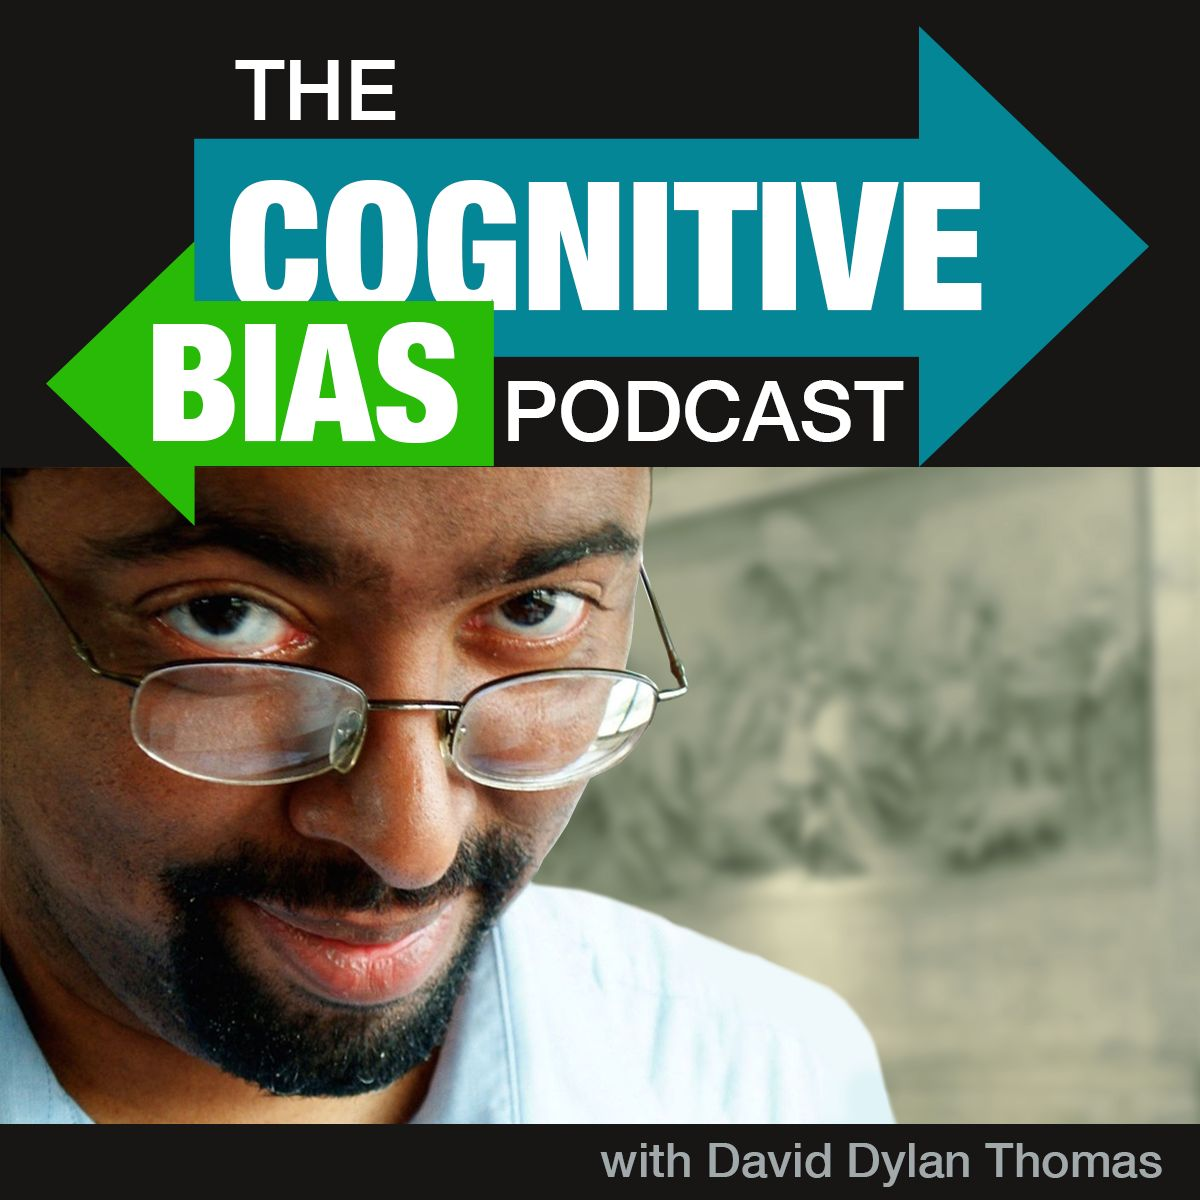 The Cognitive Bias Podcast